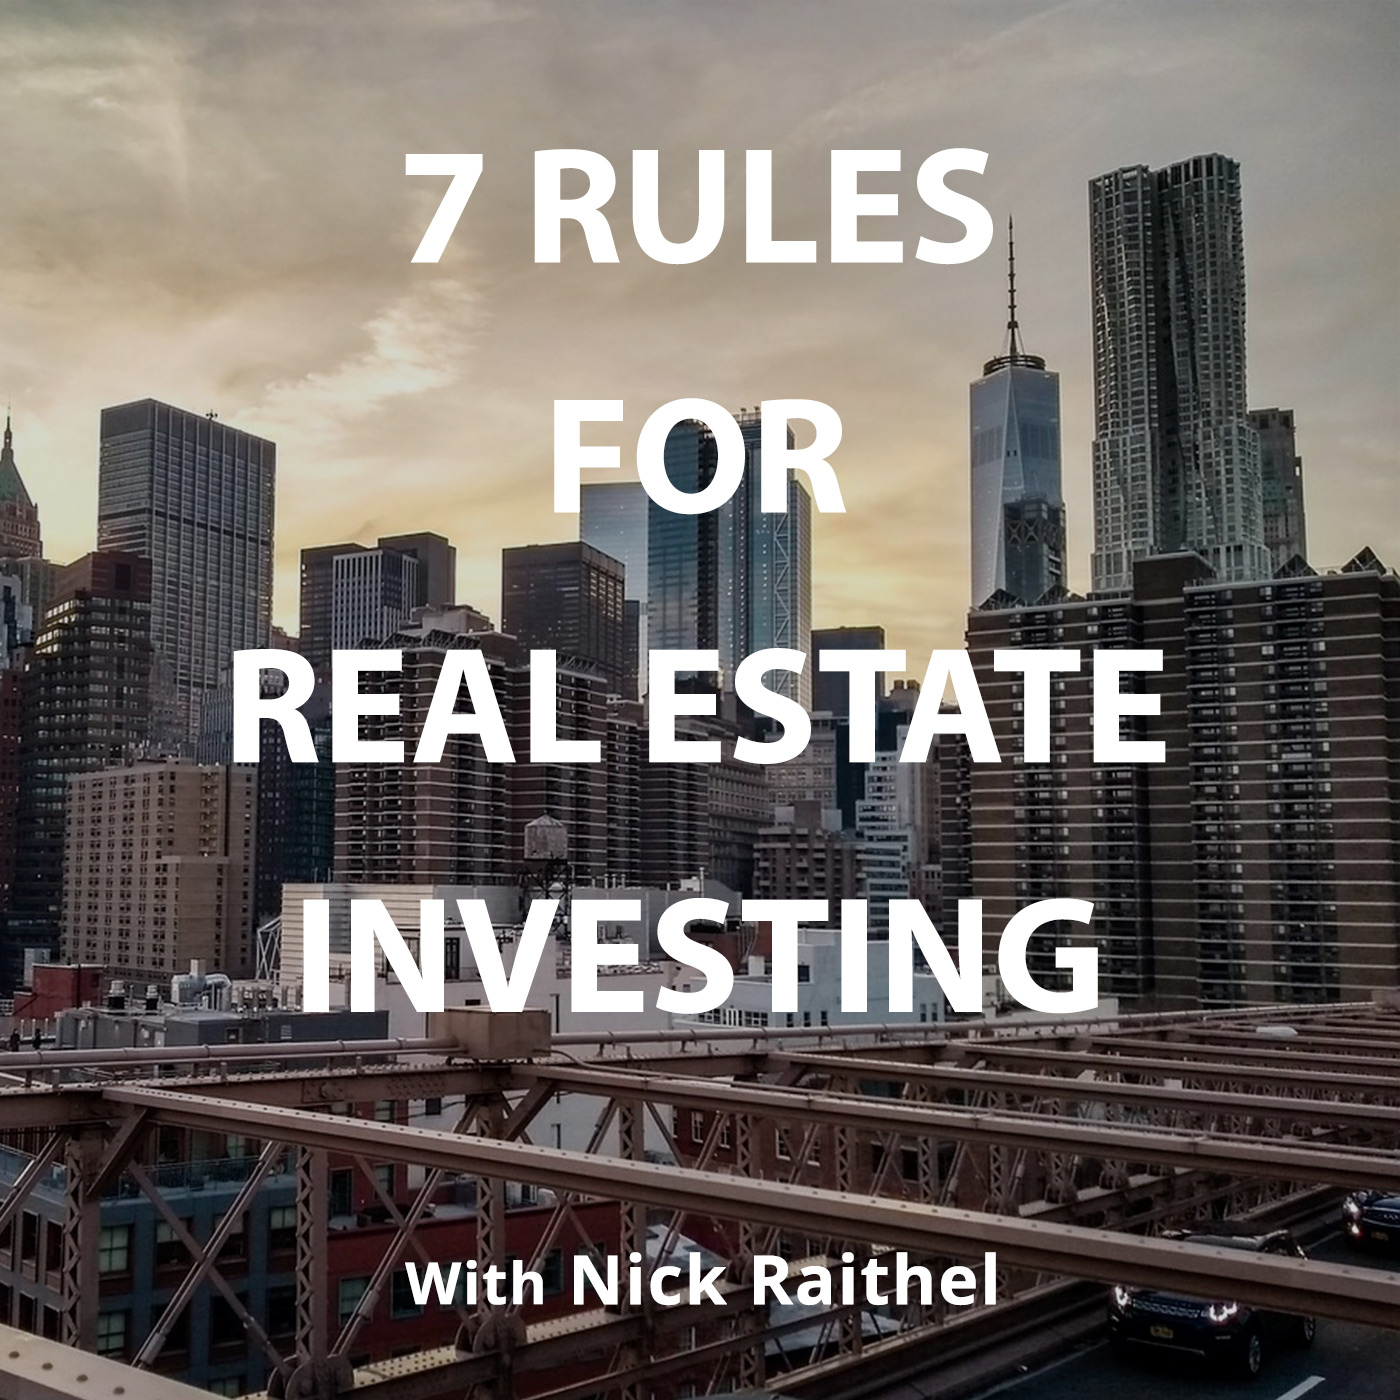 7 Rules for Real Estate Investing